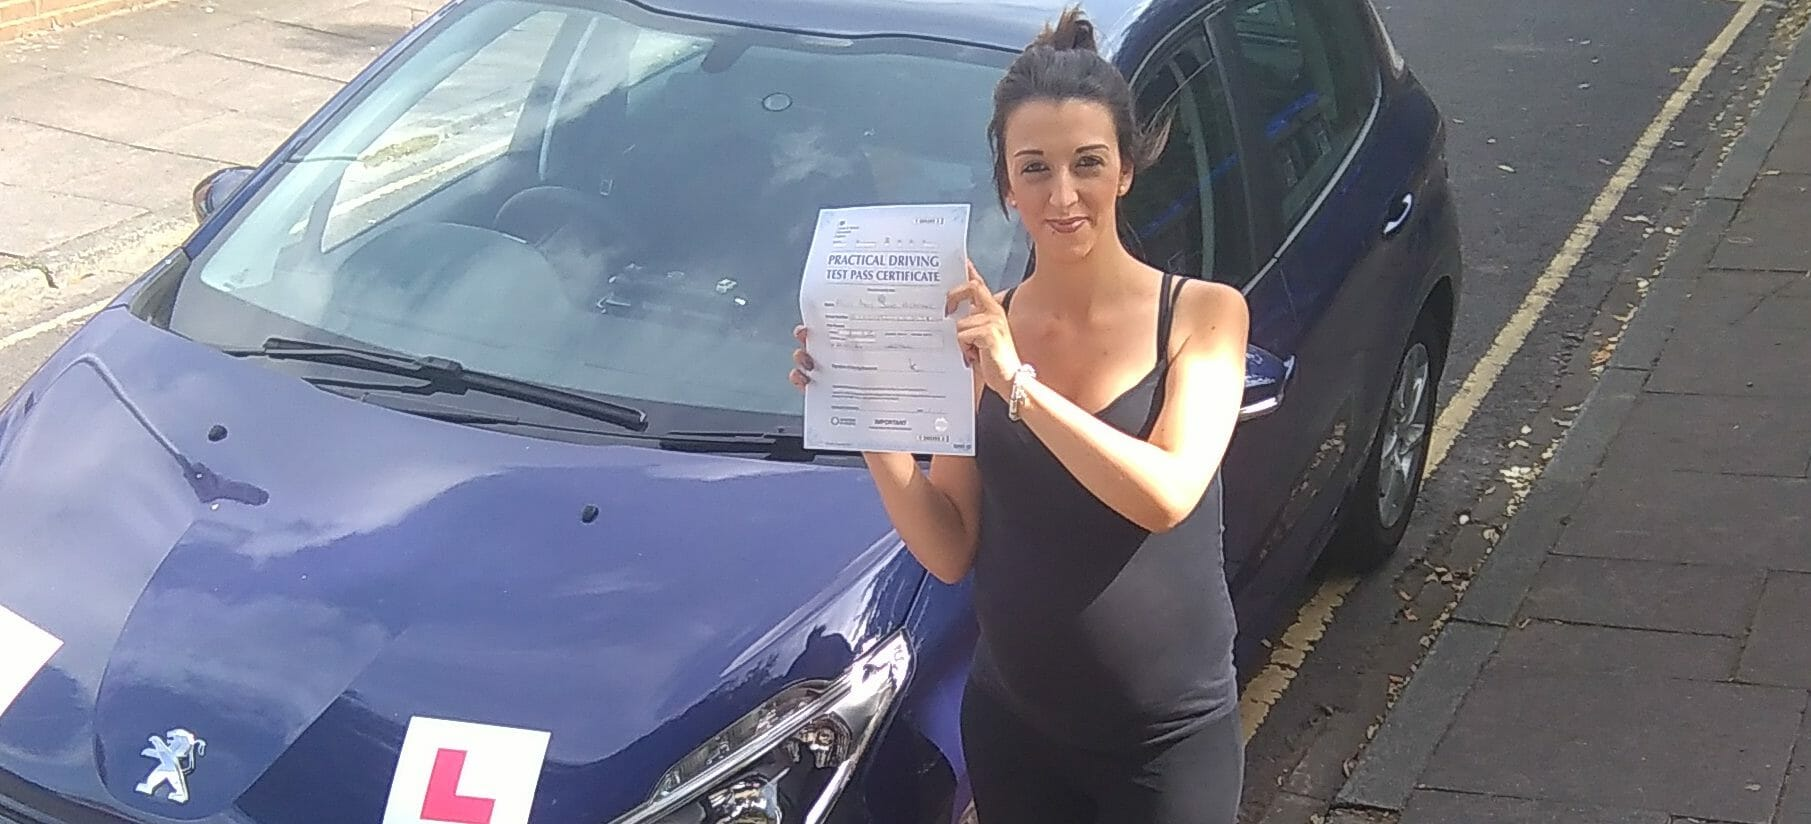 First Time Pass!! Congratulations to Aimee Mcarthur from Worthing